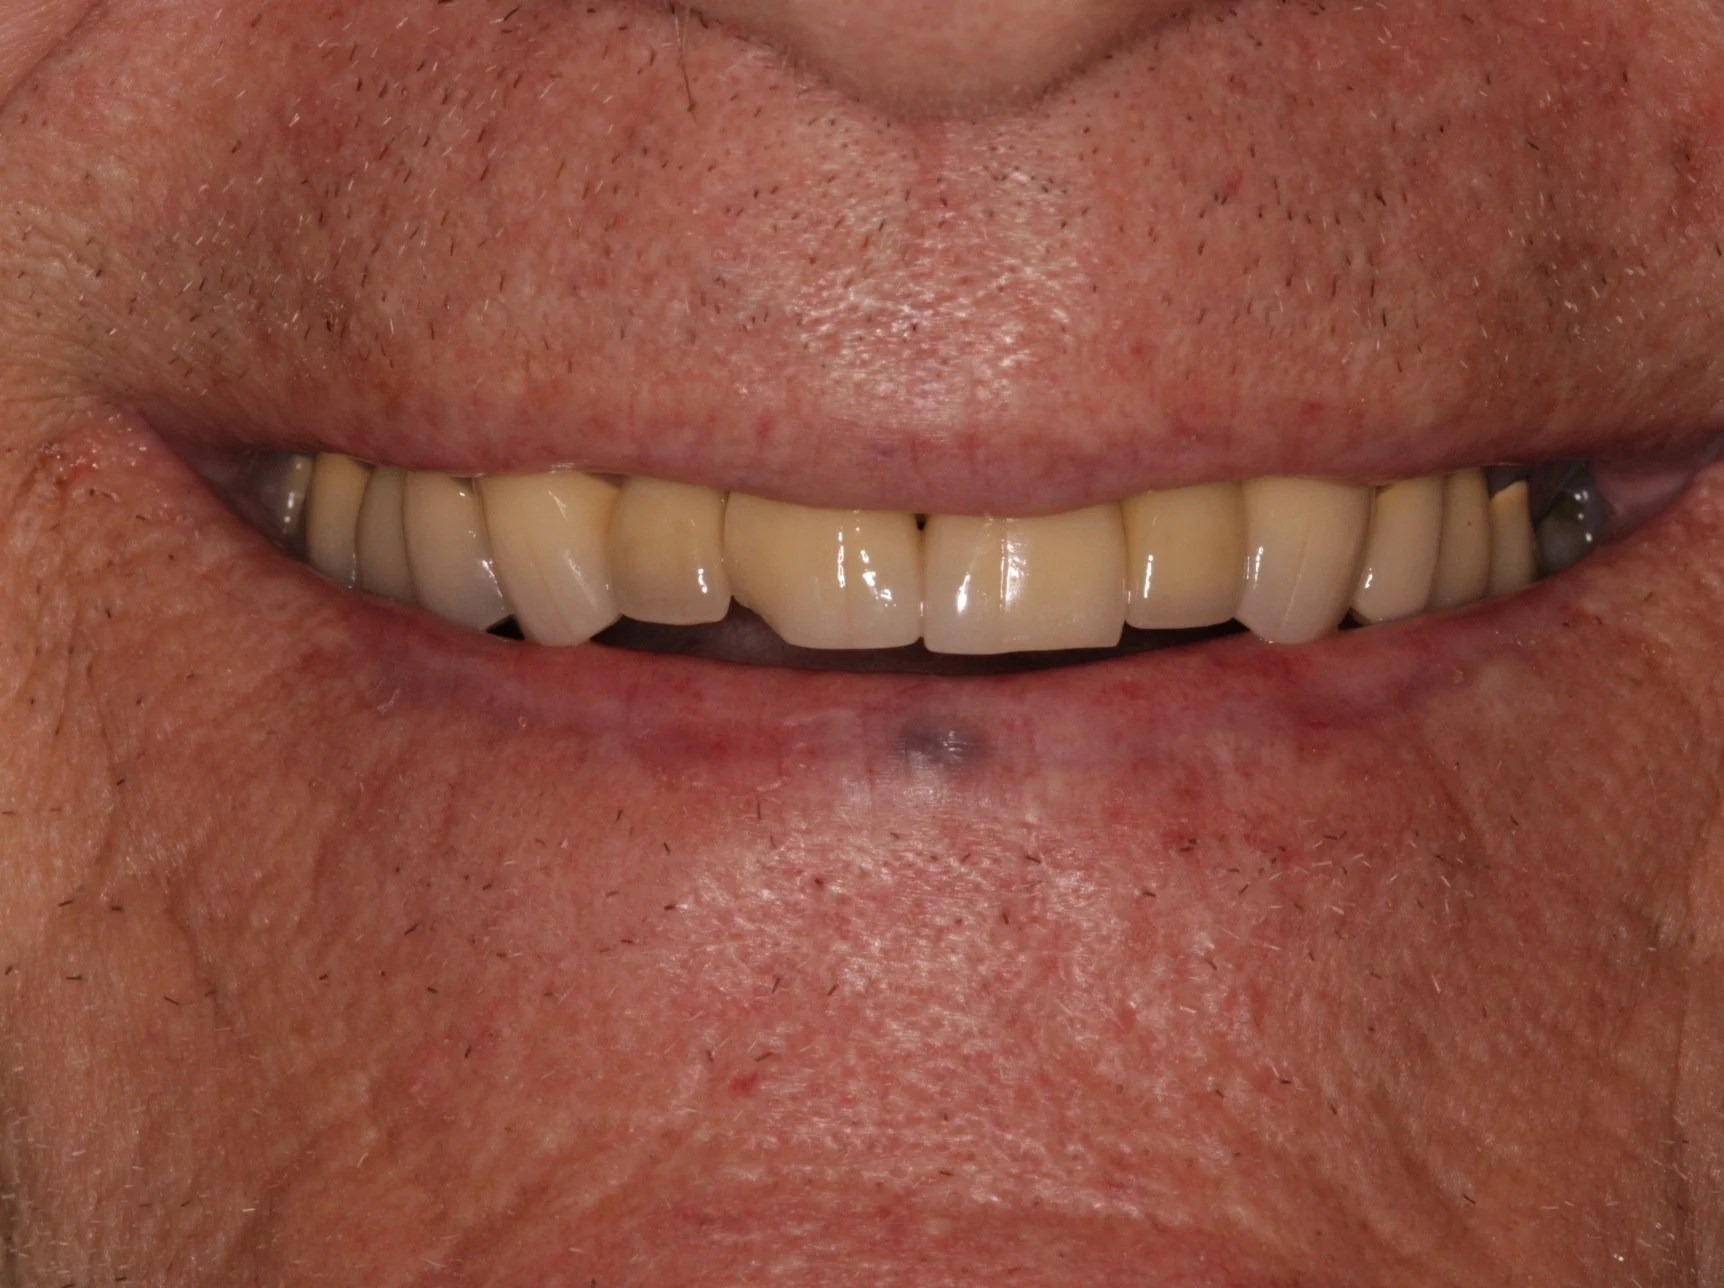 Before Amp After Oral Surgery Photos Montrose Co Oral Amp Facial Surgery